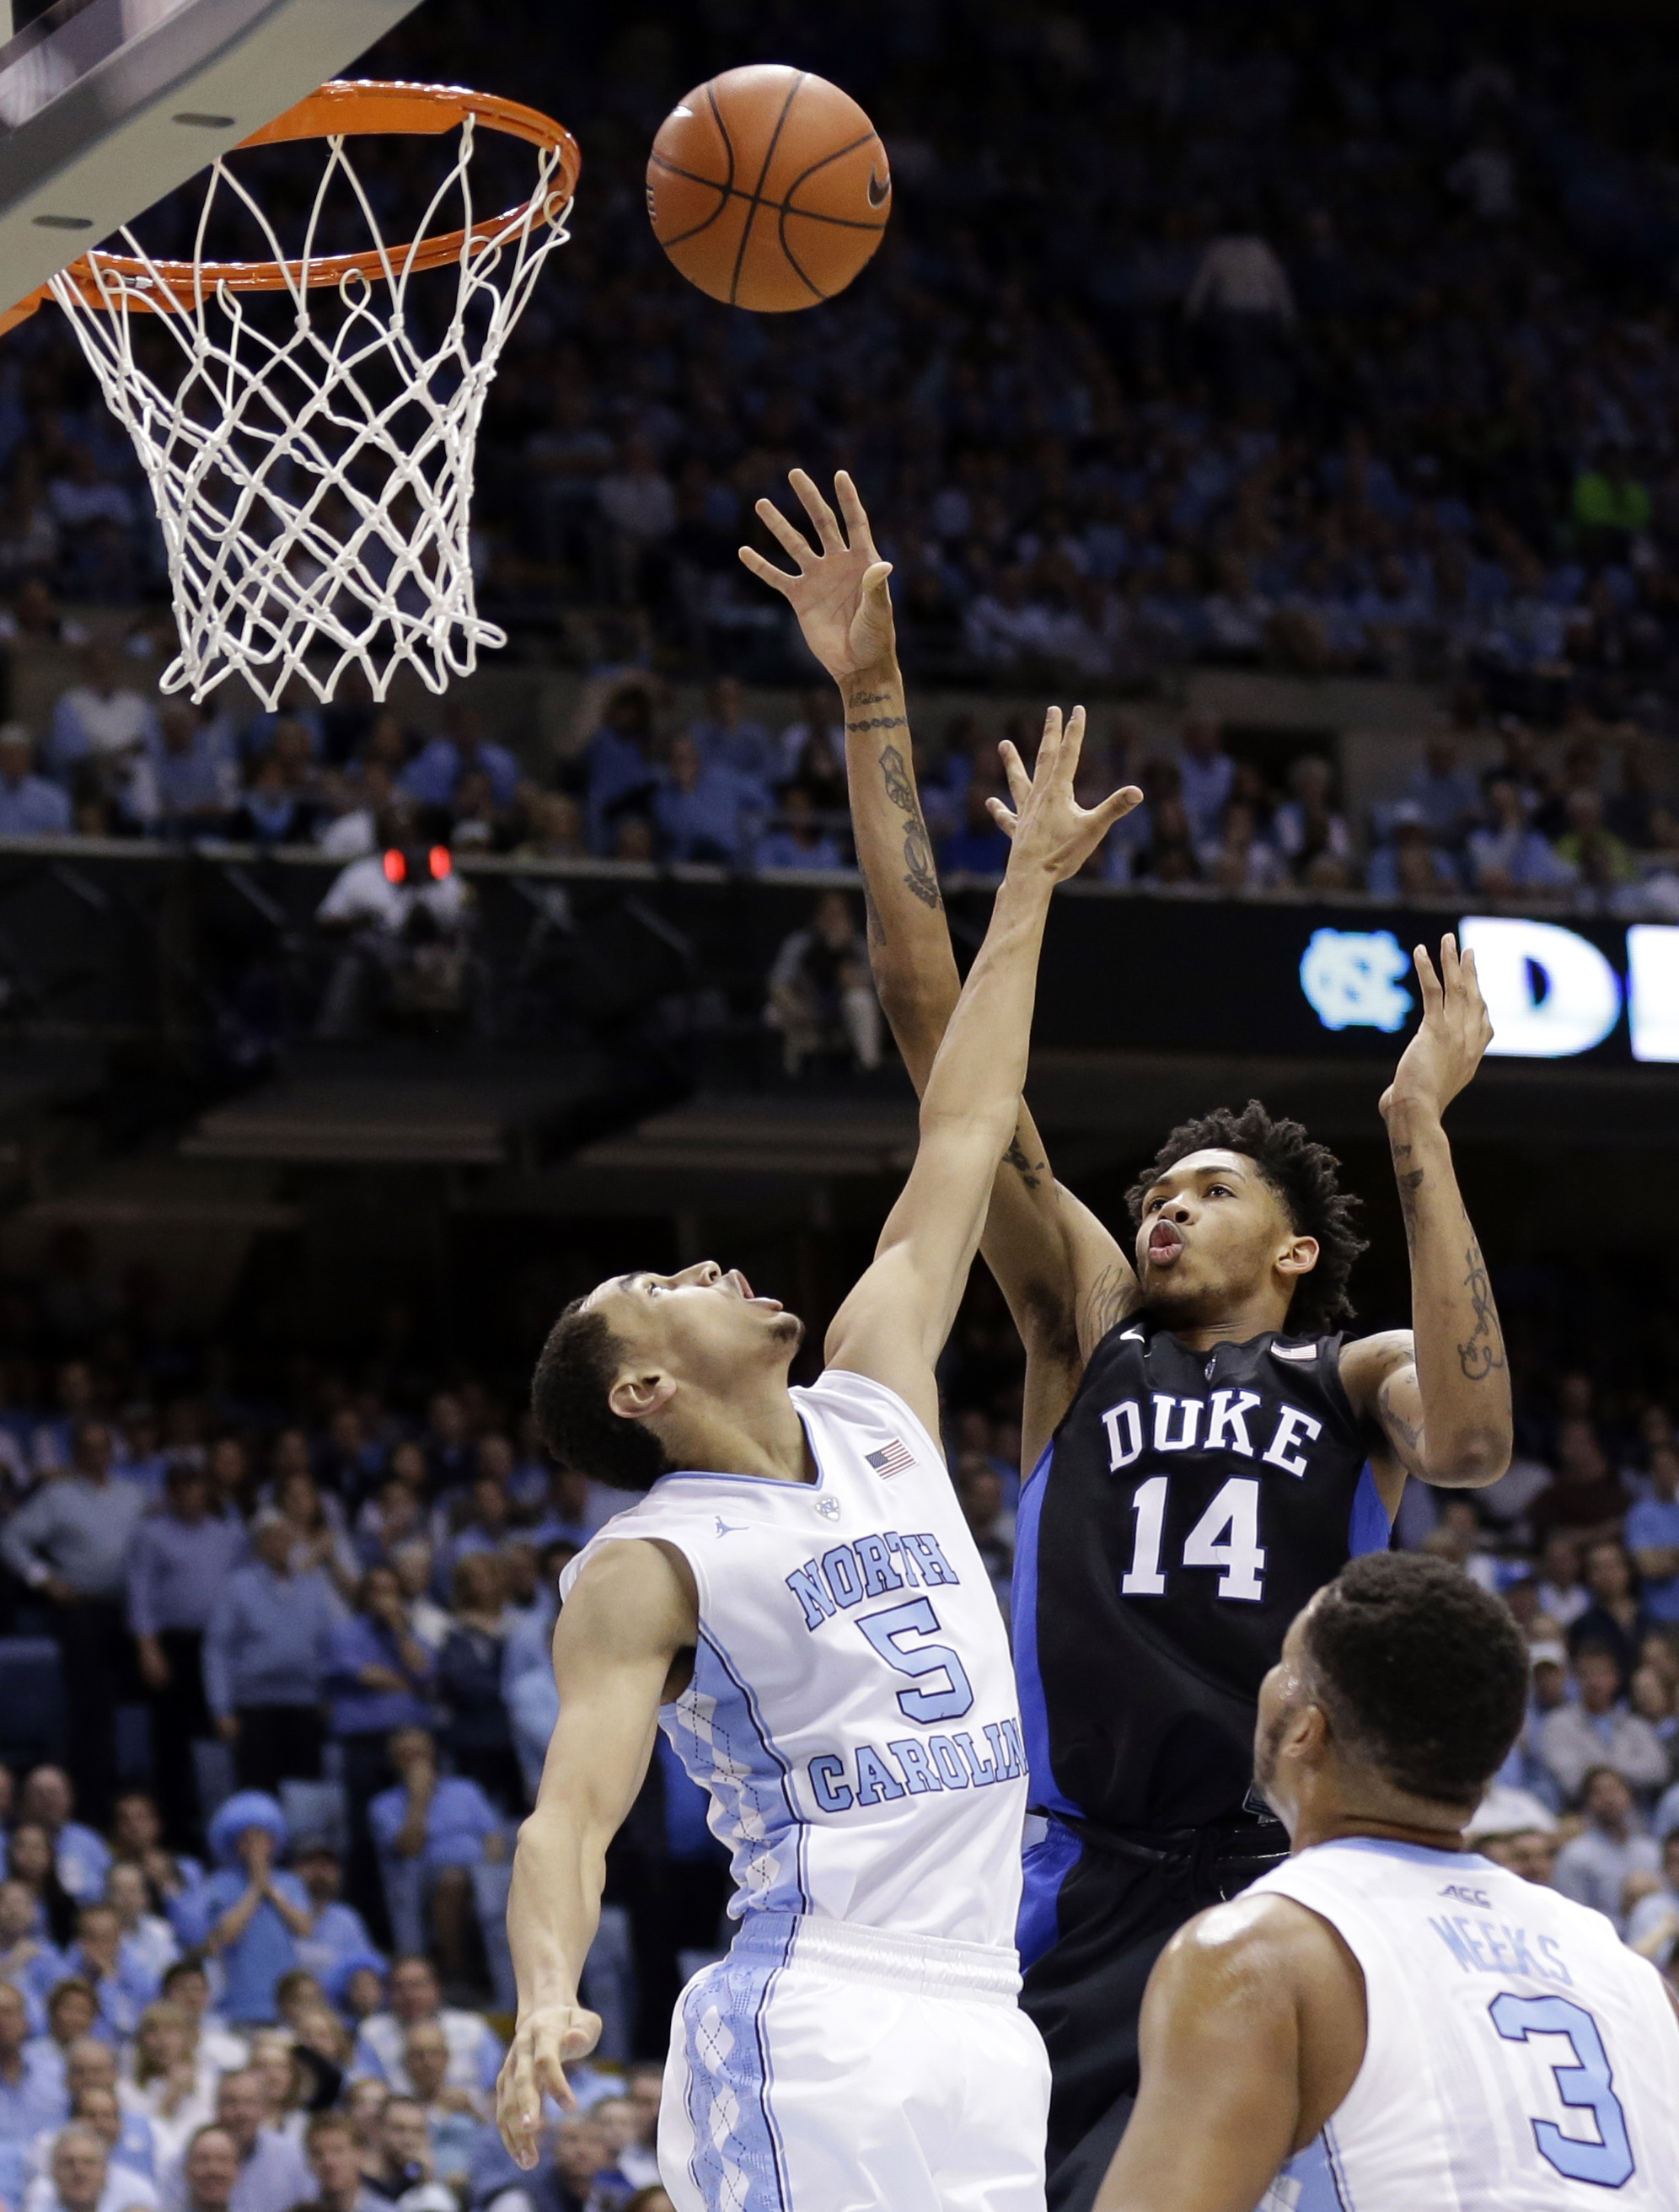 FILE - In this Feb. 17, 2016, file photo, Duke's Brandon Ingram (14) shoots over  North Carolina's Marcus Paige (5)  during the second half of an NCAA college basketball game in Chapel Hill, N.C. Ingram has a knack for foiling North Carolina. The instate